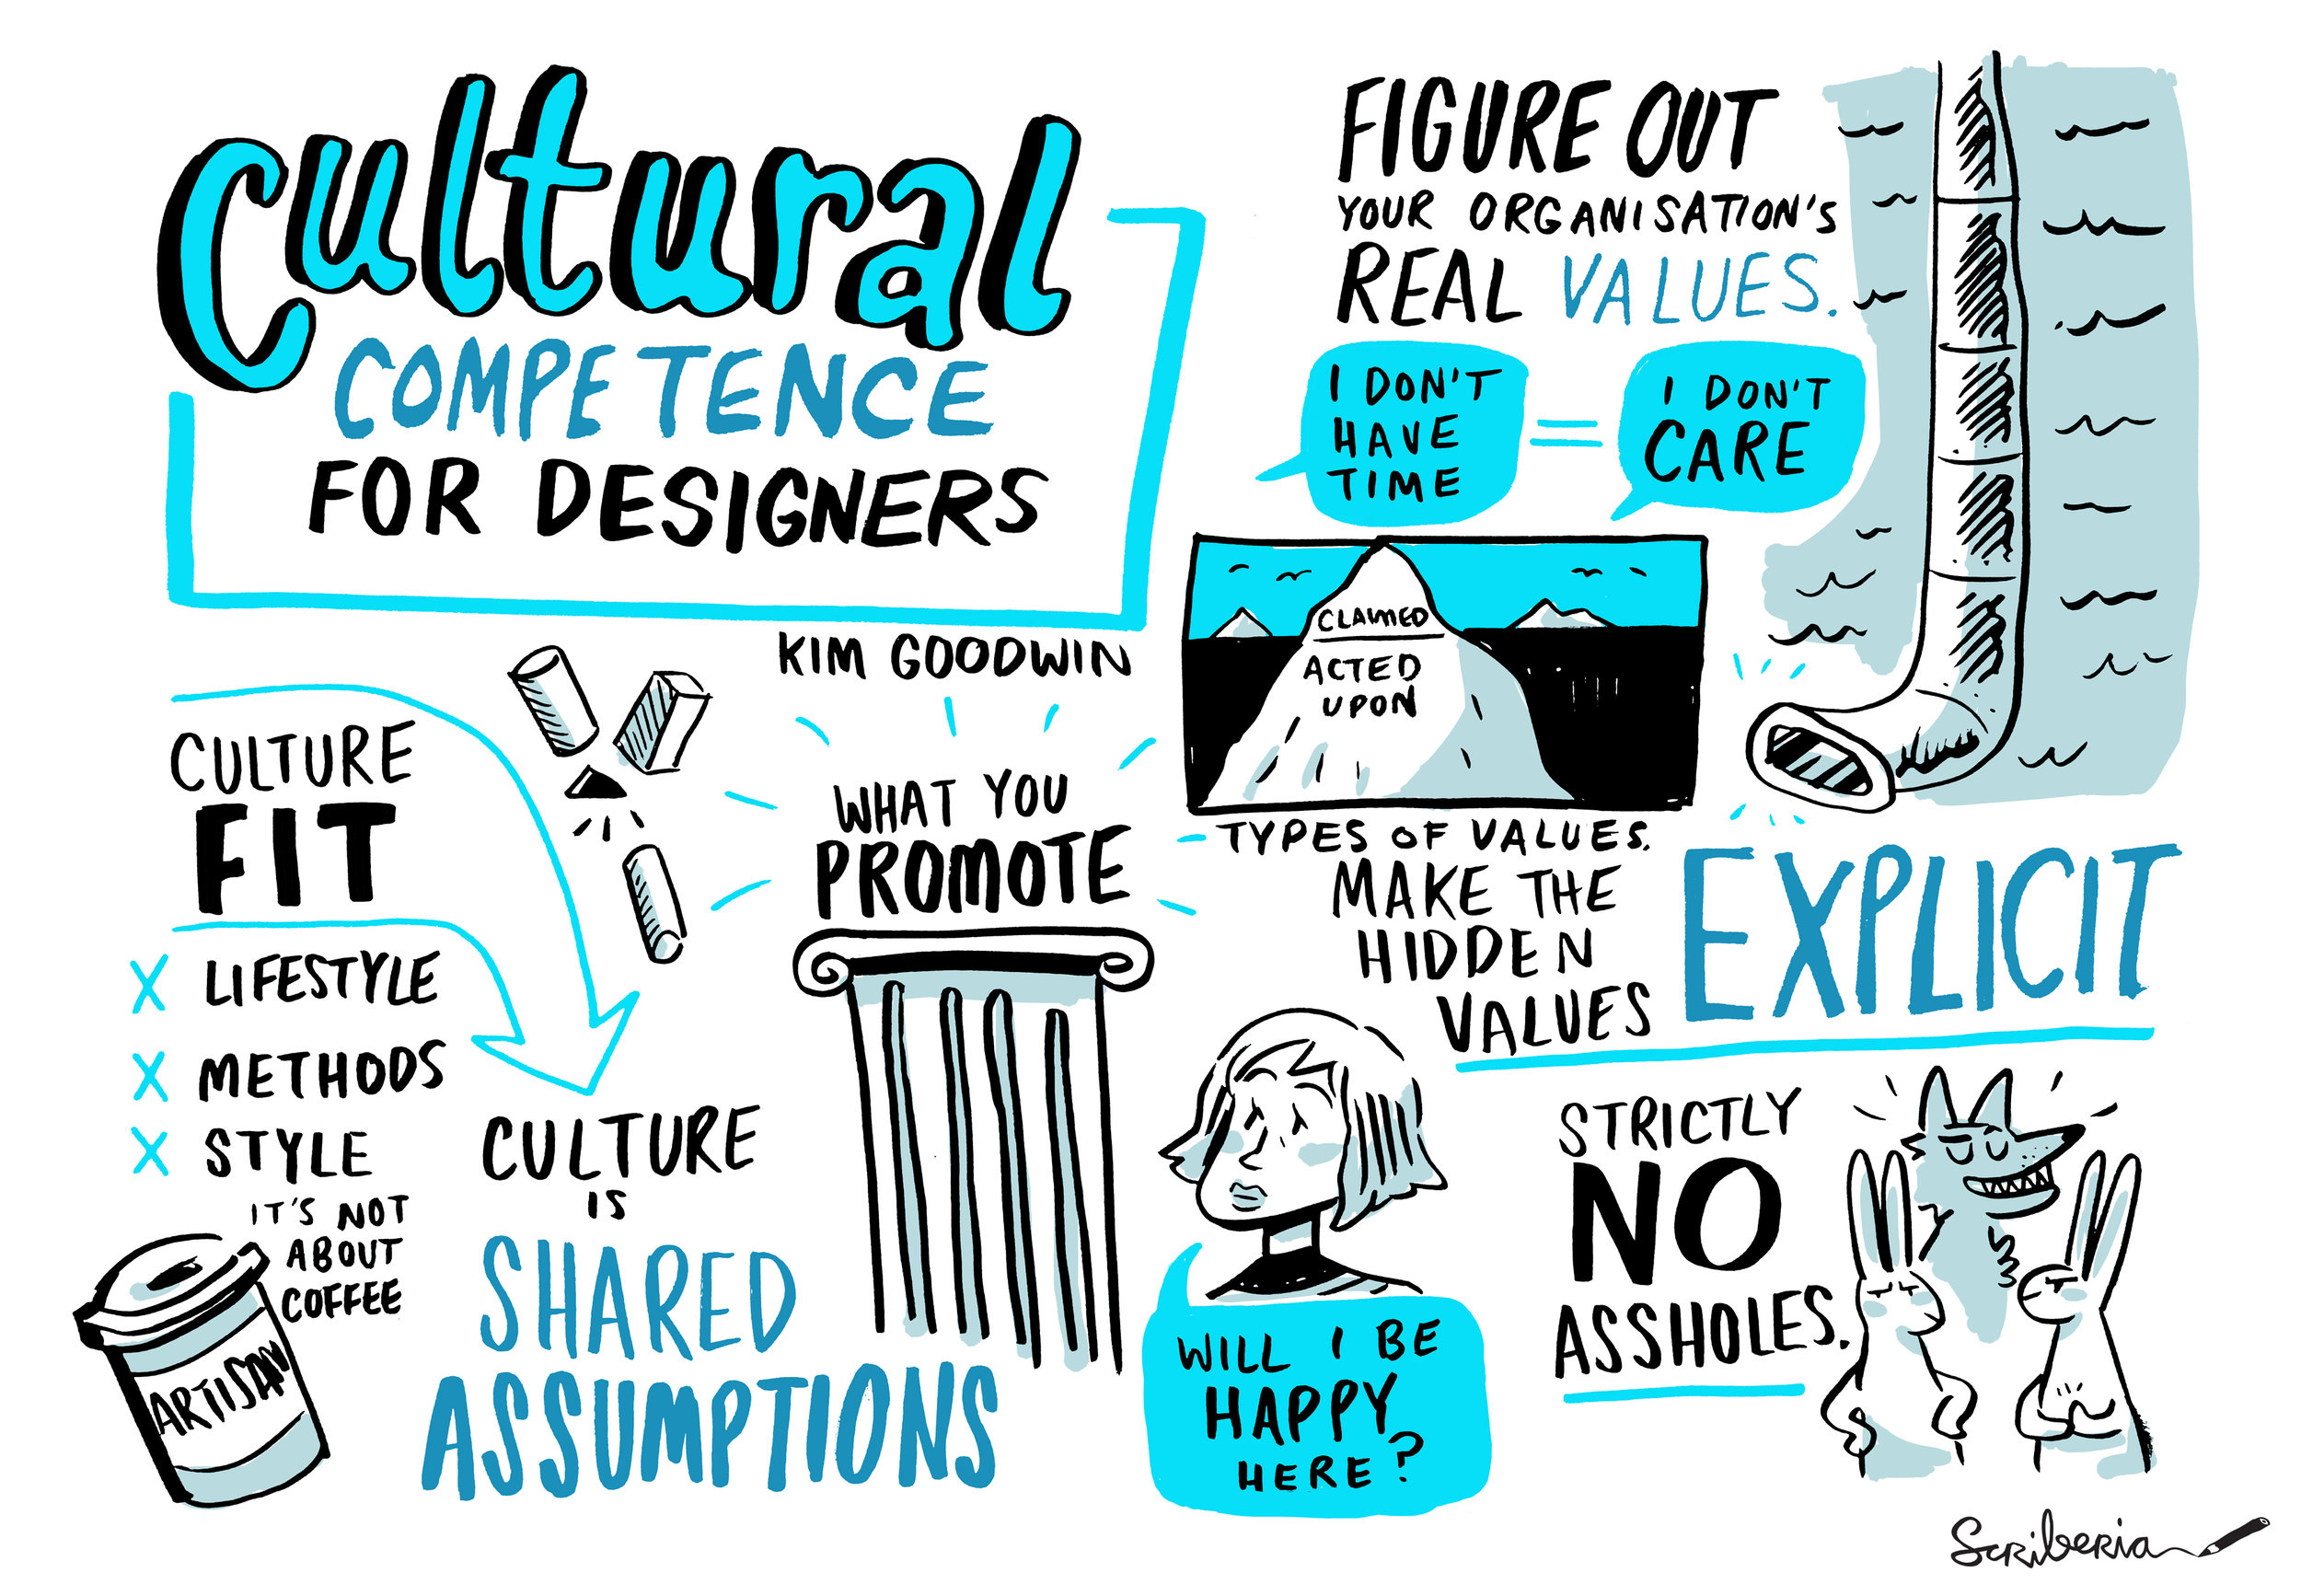 Sketchnotes from the 2016 Leading Design Conference   Scriberia